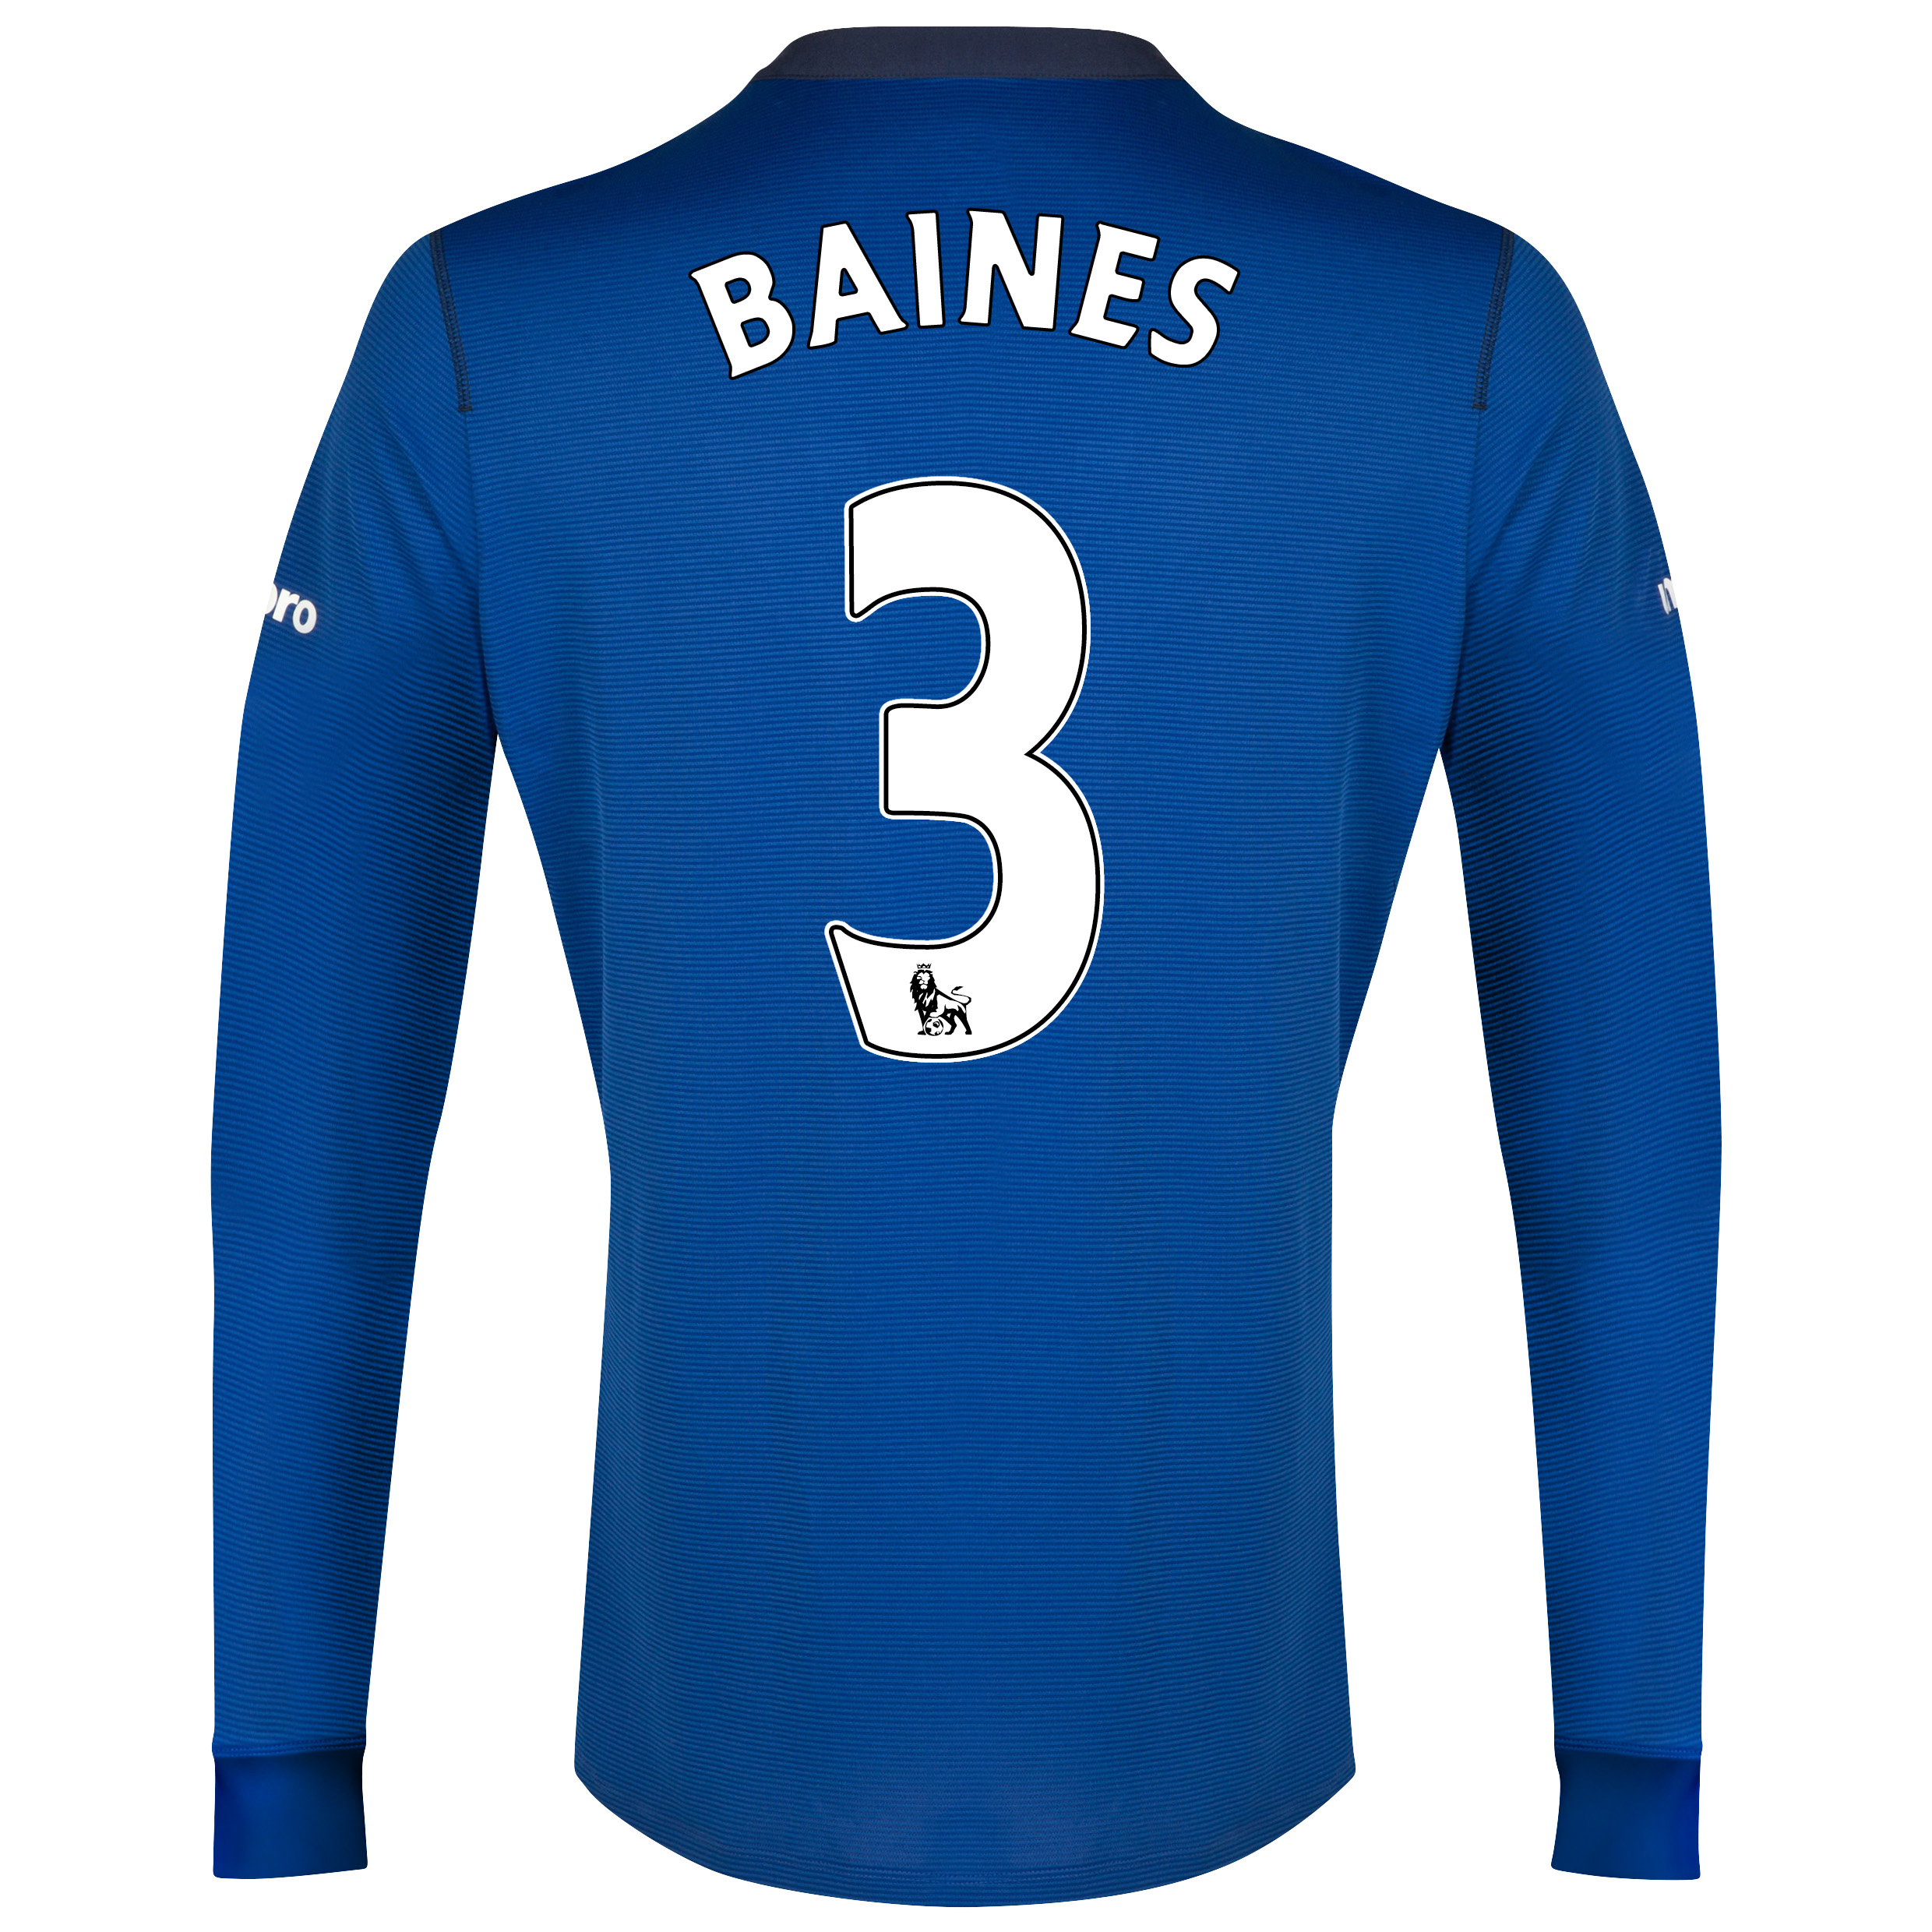 Everton LS Home Shirt 2014/15 with Baines 3 printing